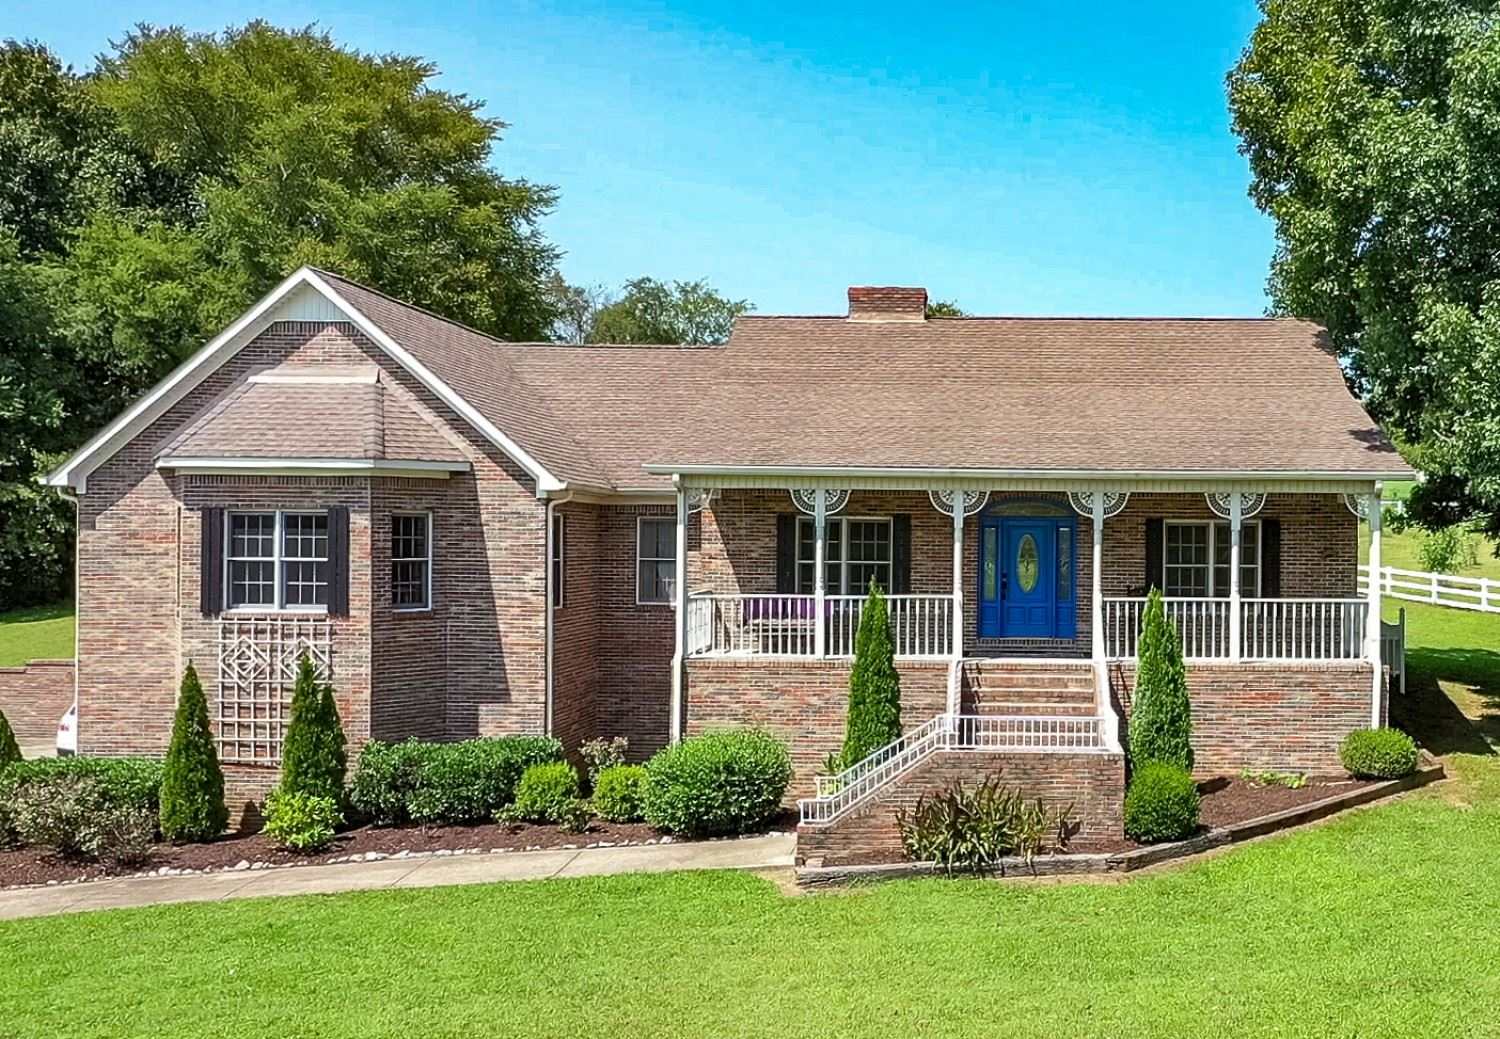 Photo of 312 Lakeway Ter, Spring Hill, TN 37174 (MLS # 2190437)